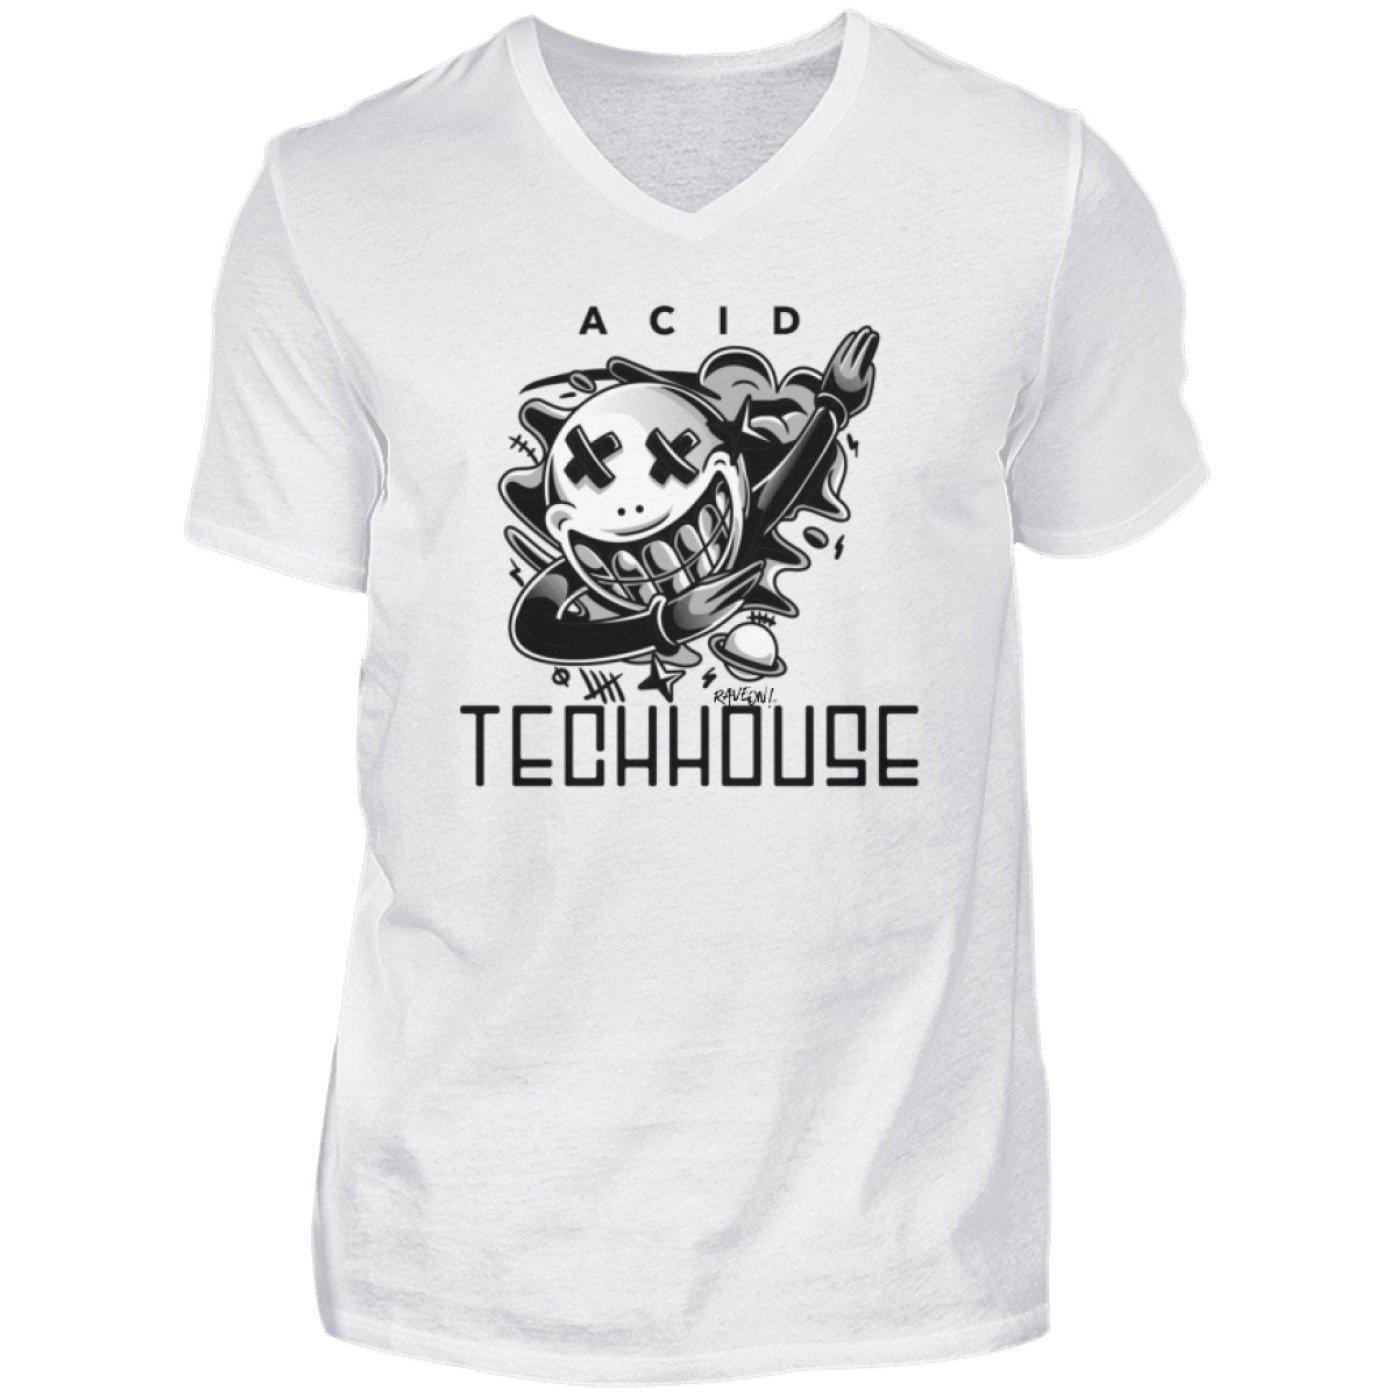 ACID TECHHOUSE - Rave On!® - Herren V-Neck Shirt V-Neck Herrenshirt White / S - Rave On!® der Club & Techno Szene Shop für Coole Junge Mode Streetwear Style & Fashion Outfits + Sexy Festival 420 Stuff